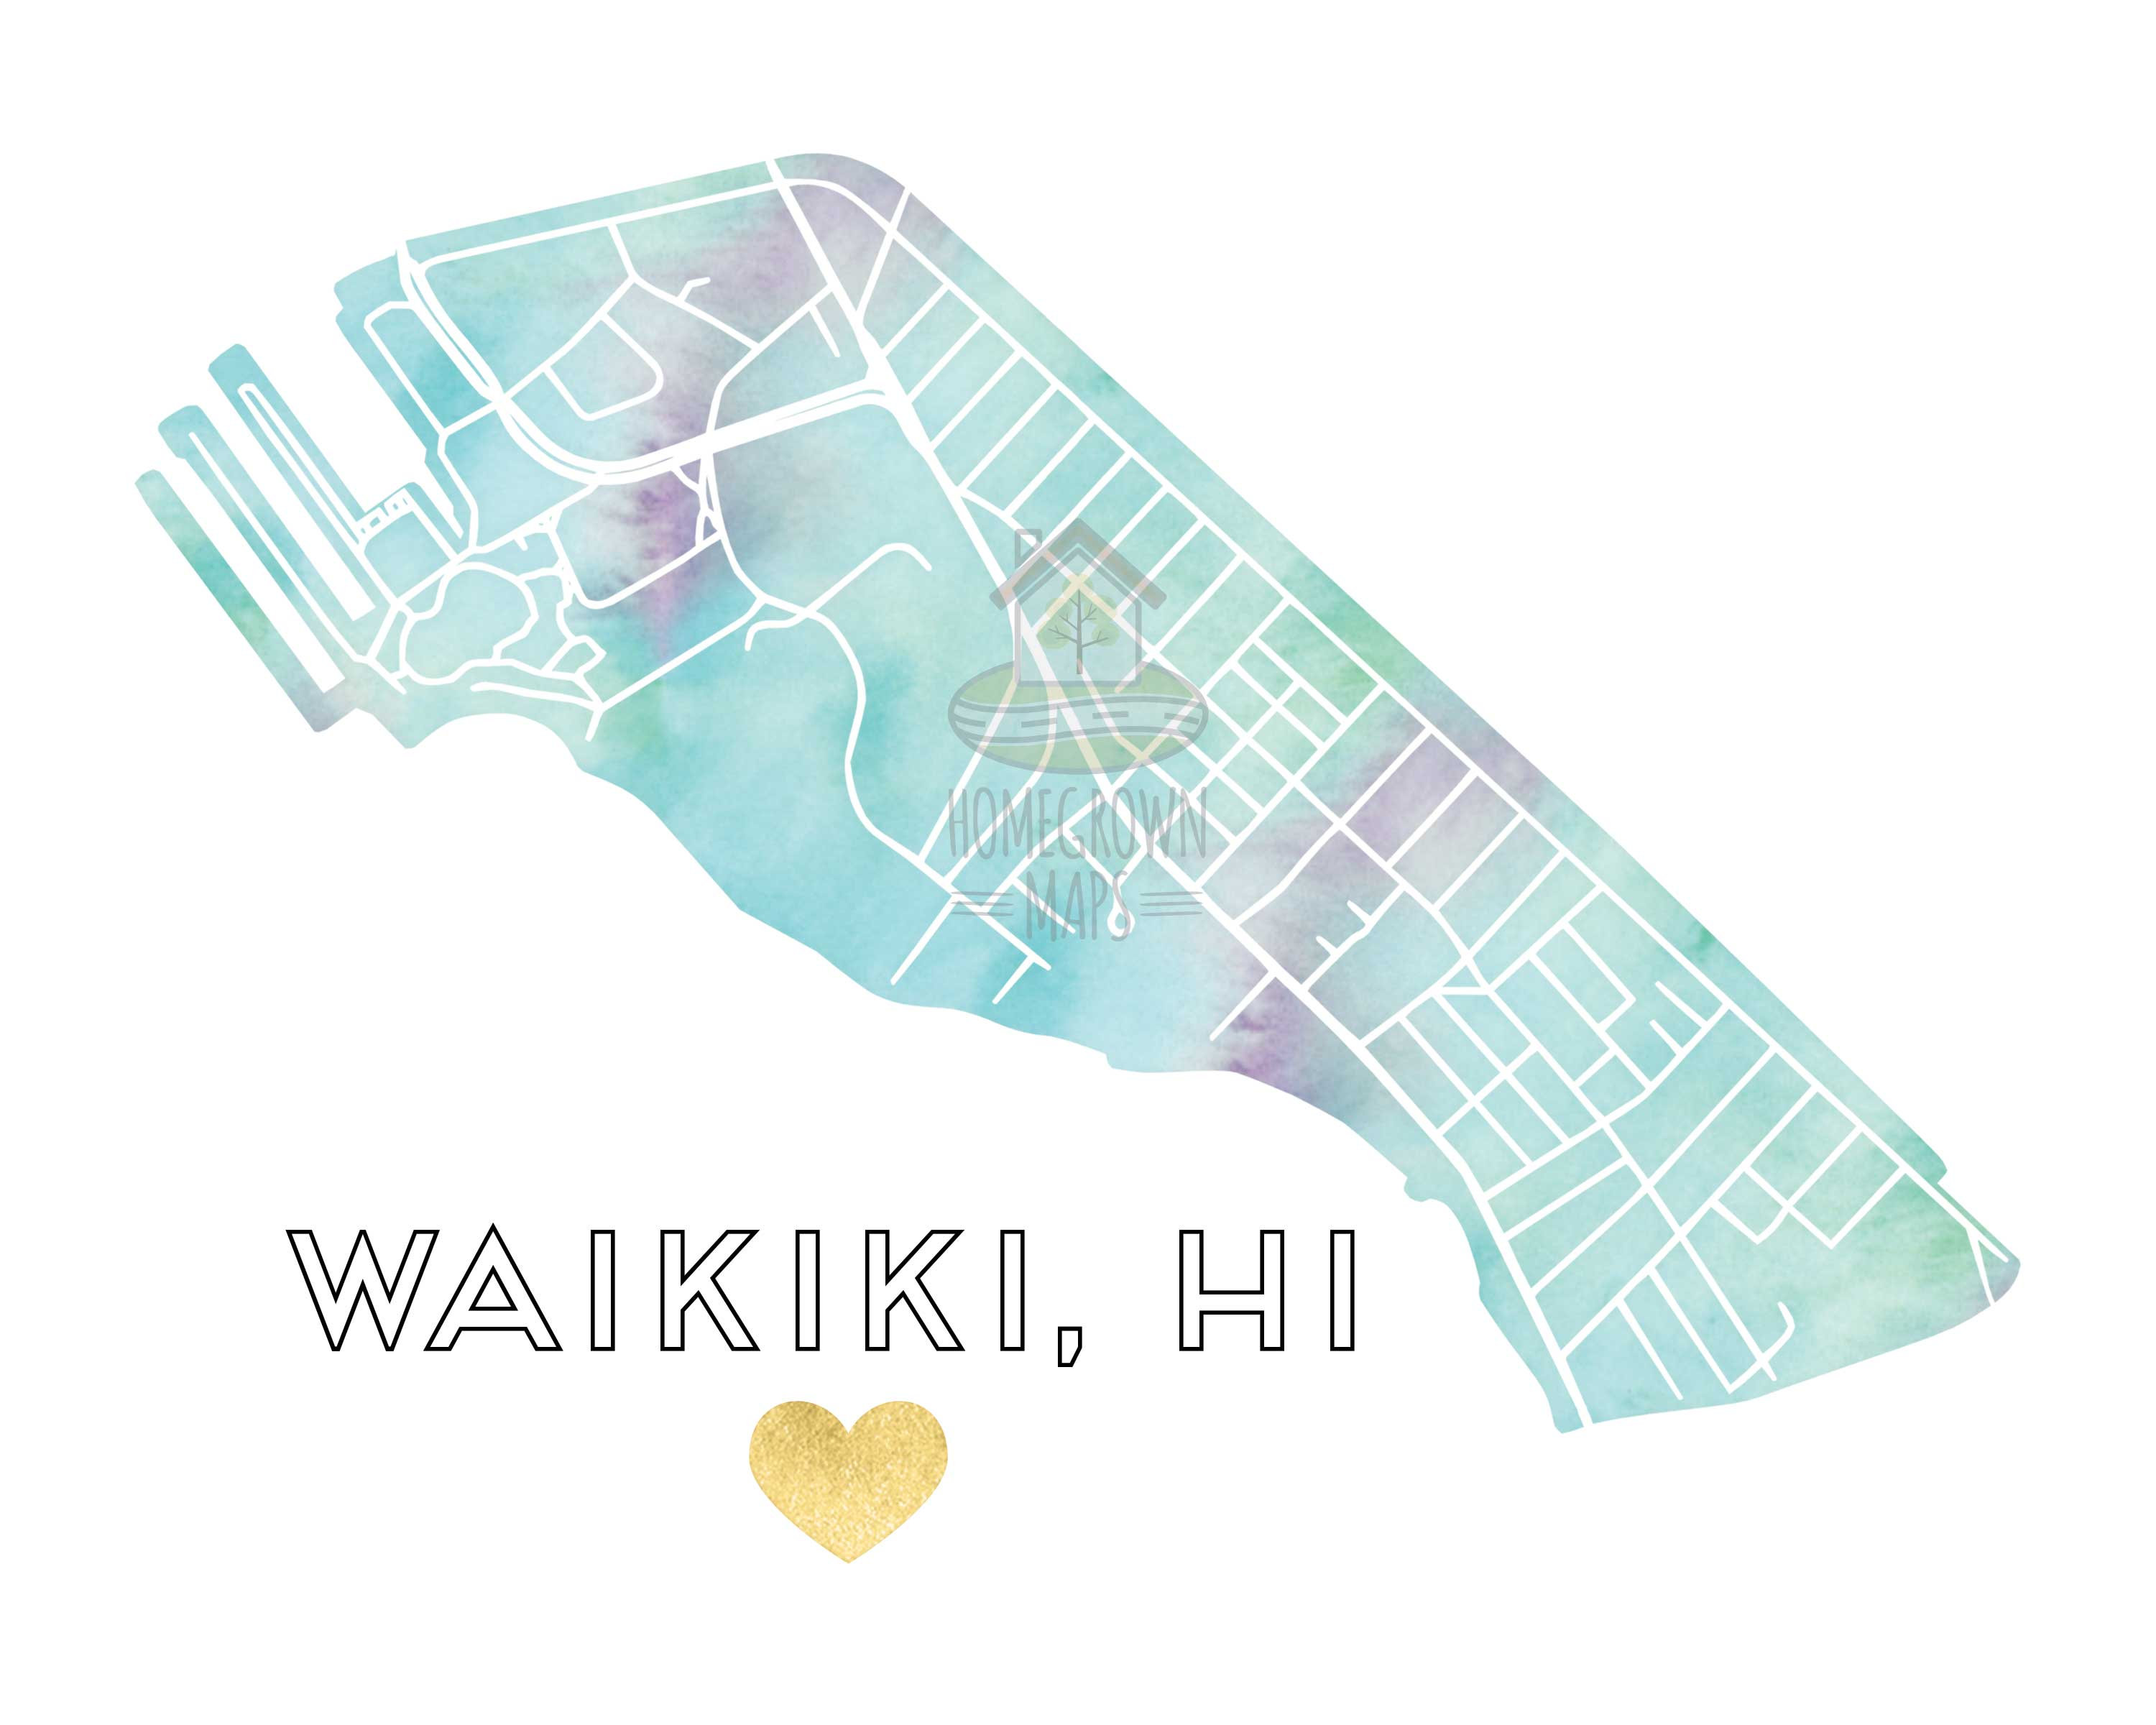 graphic about Printable Map of Waikiki referred to as Waikiki, Hawaii Watercolor Gold Foil Highway Map Print